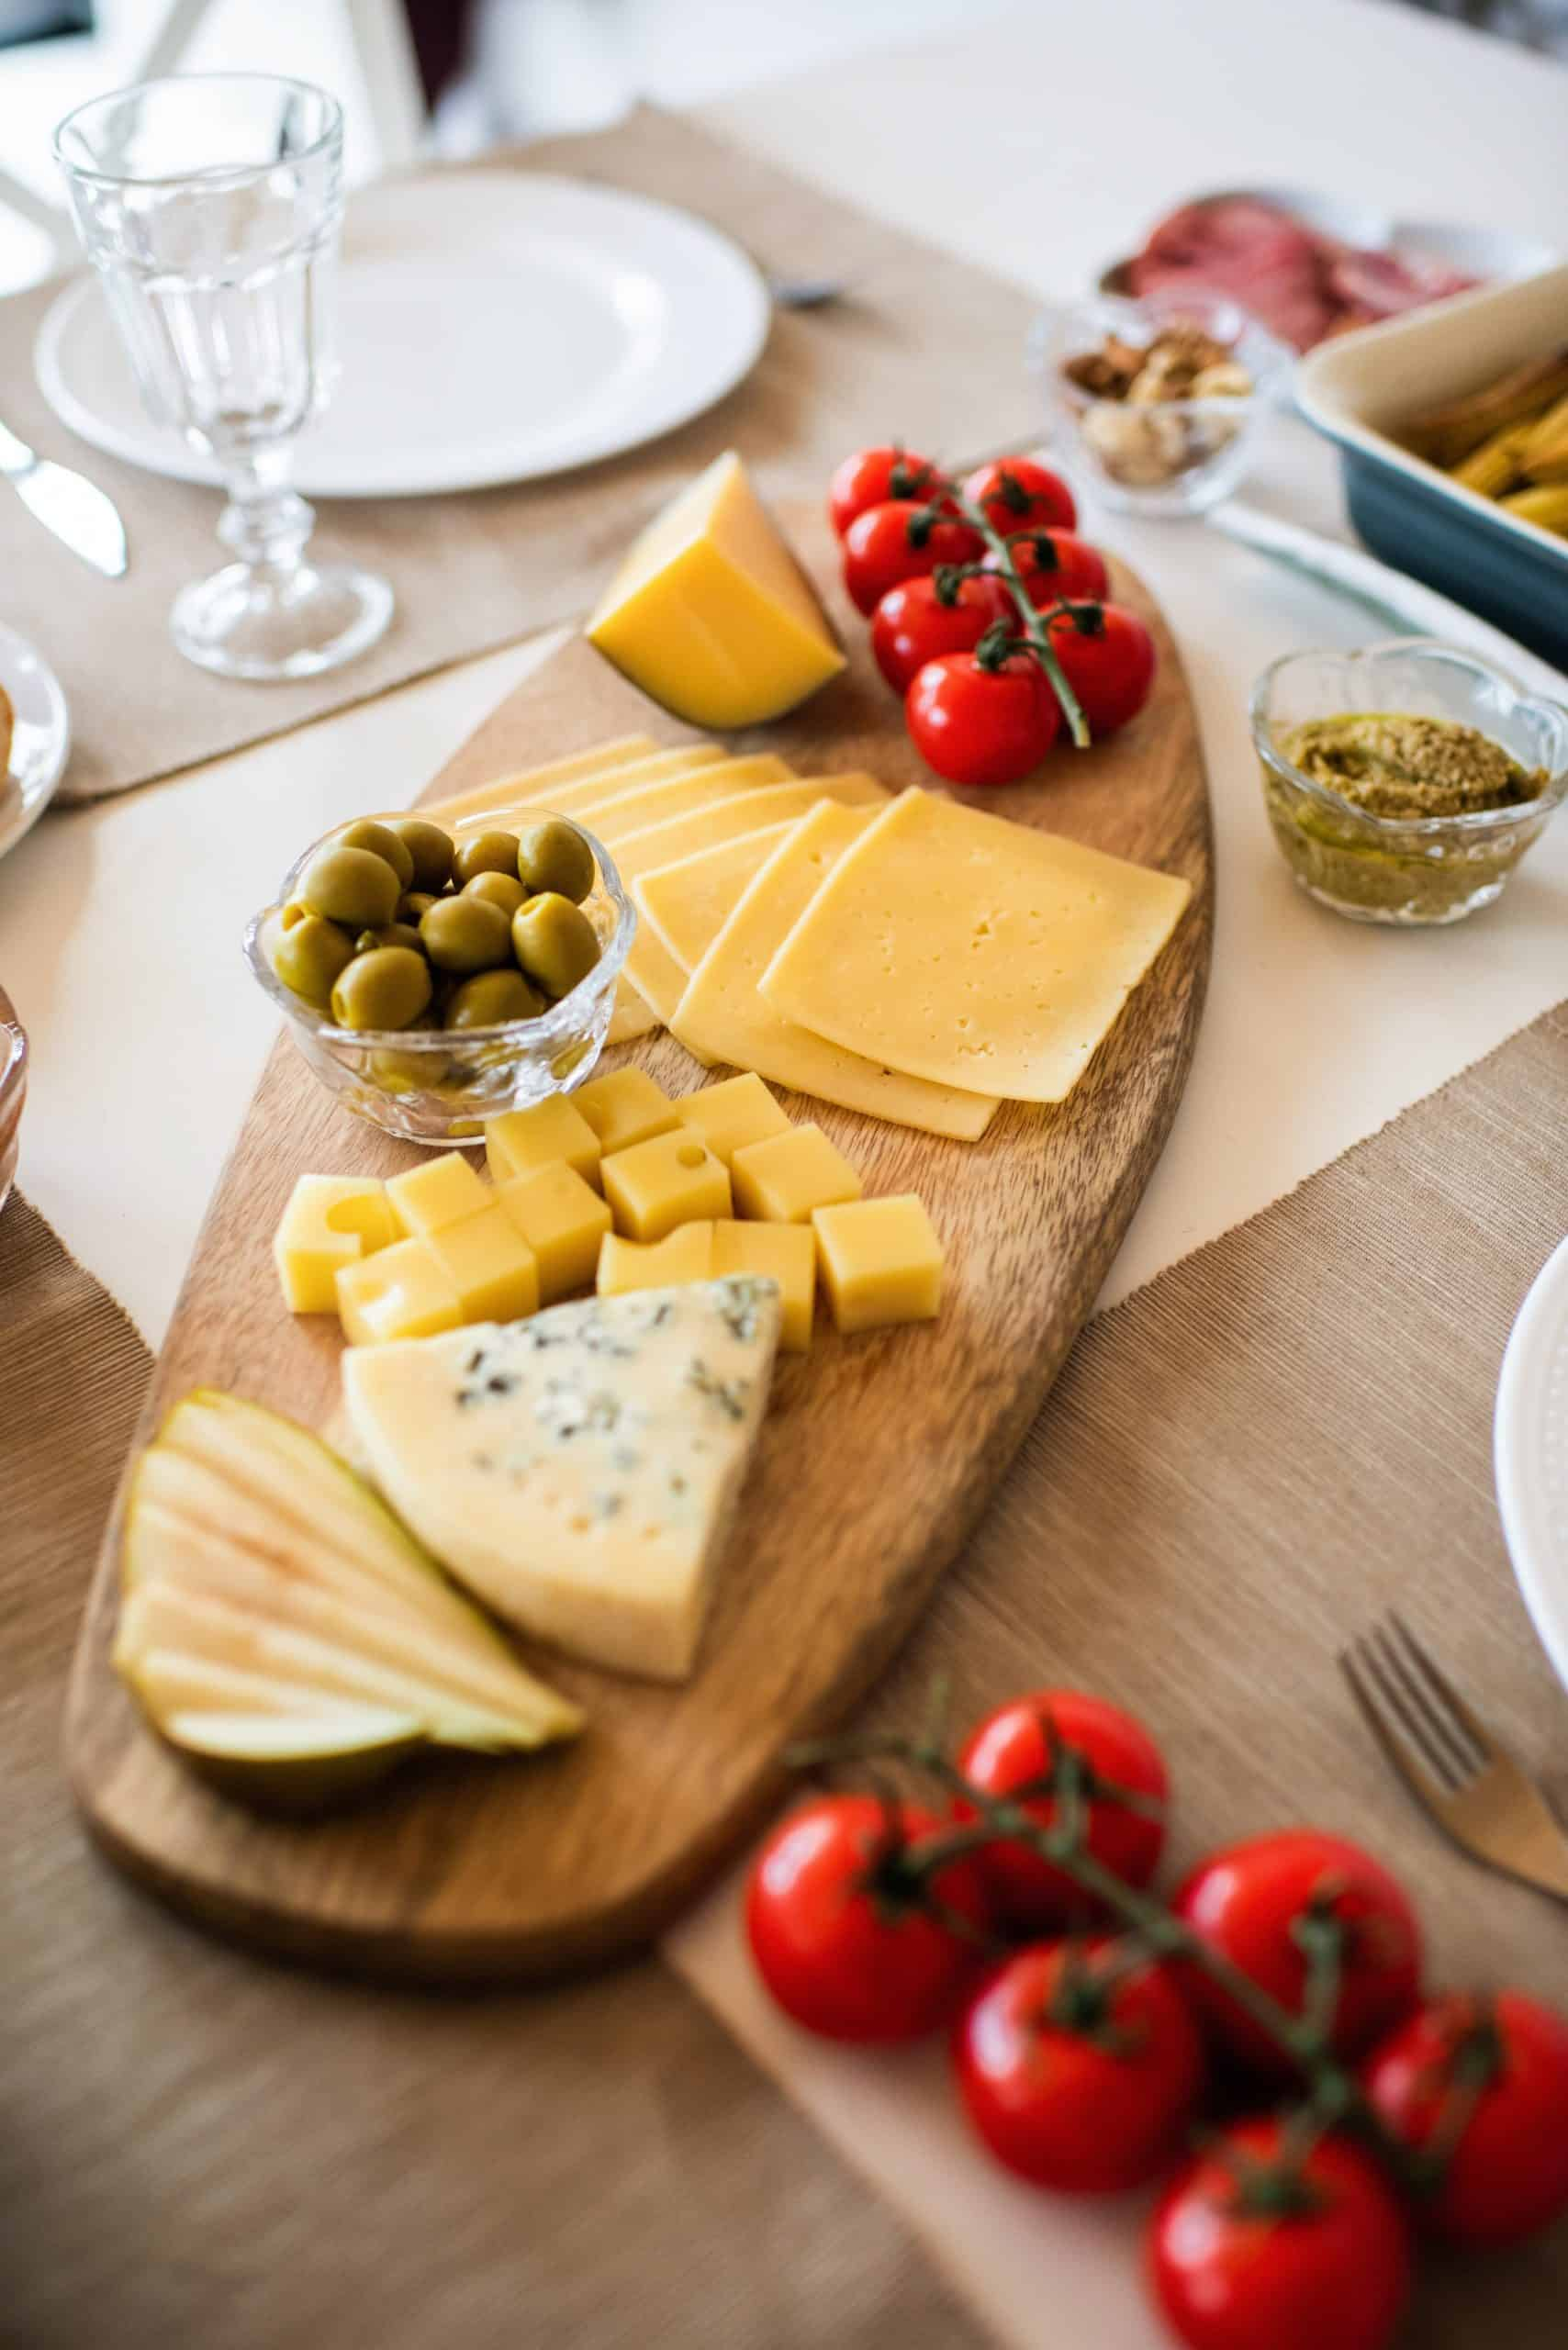 Finding The Best Cheese For Your Recipe